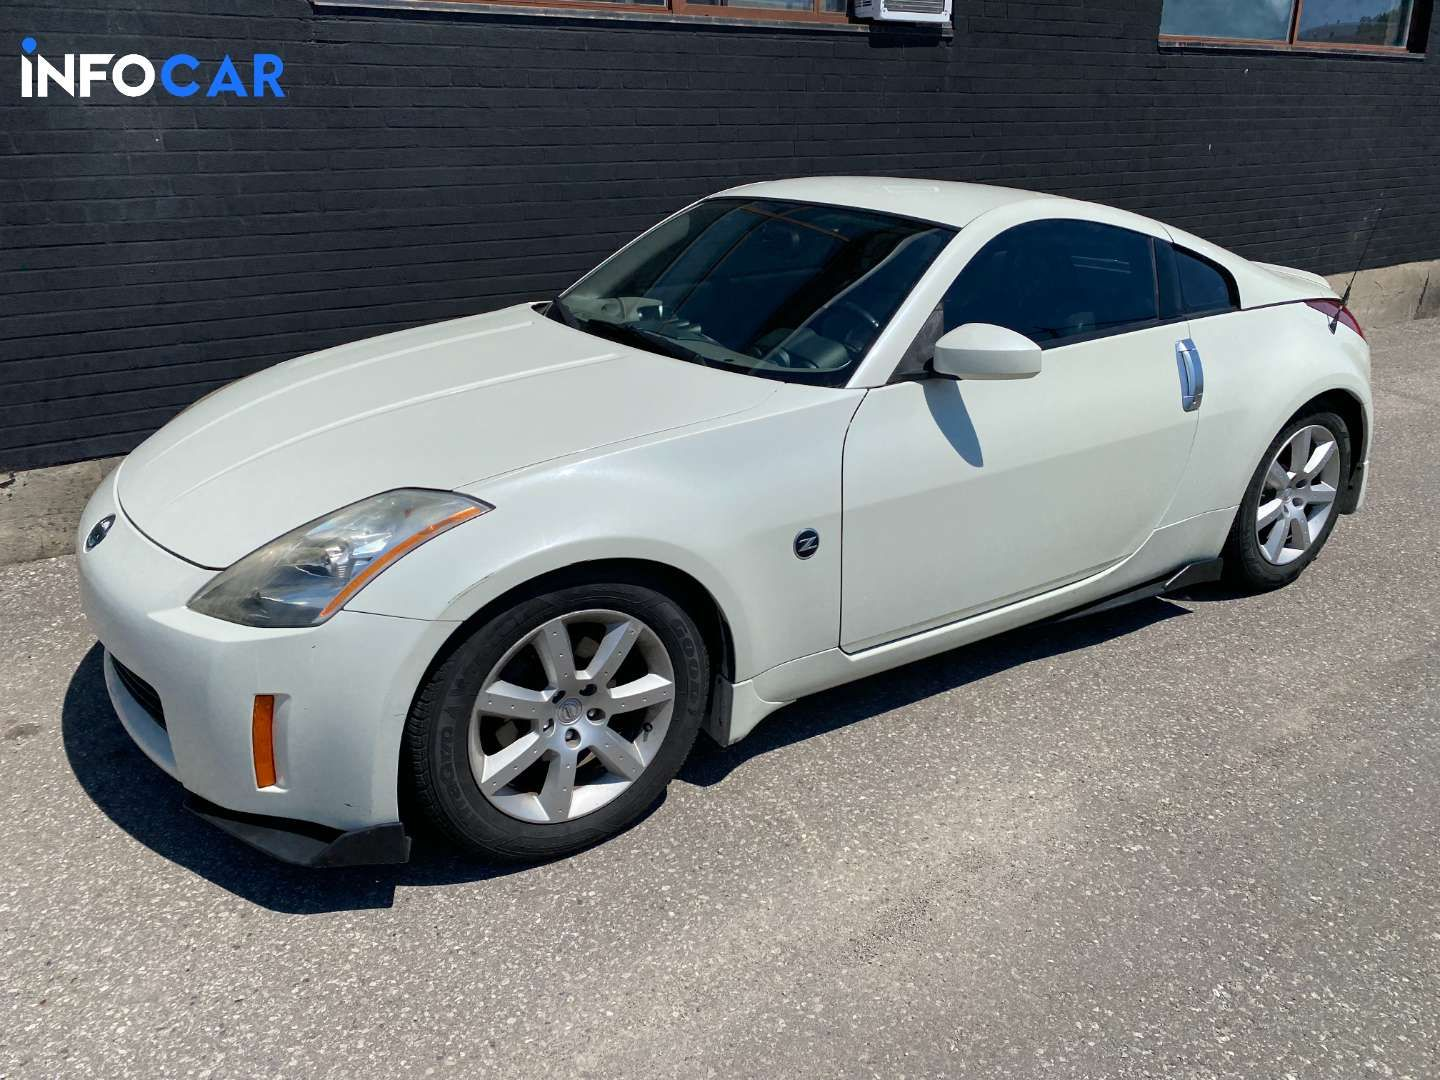 2003 Nissan 350Z Touring - INFOCAR - Toronto's Most Comprehensive New and Used Auto Trading Platform